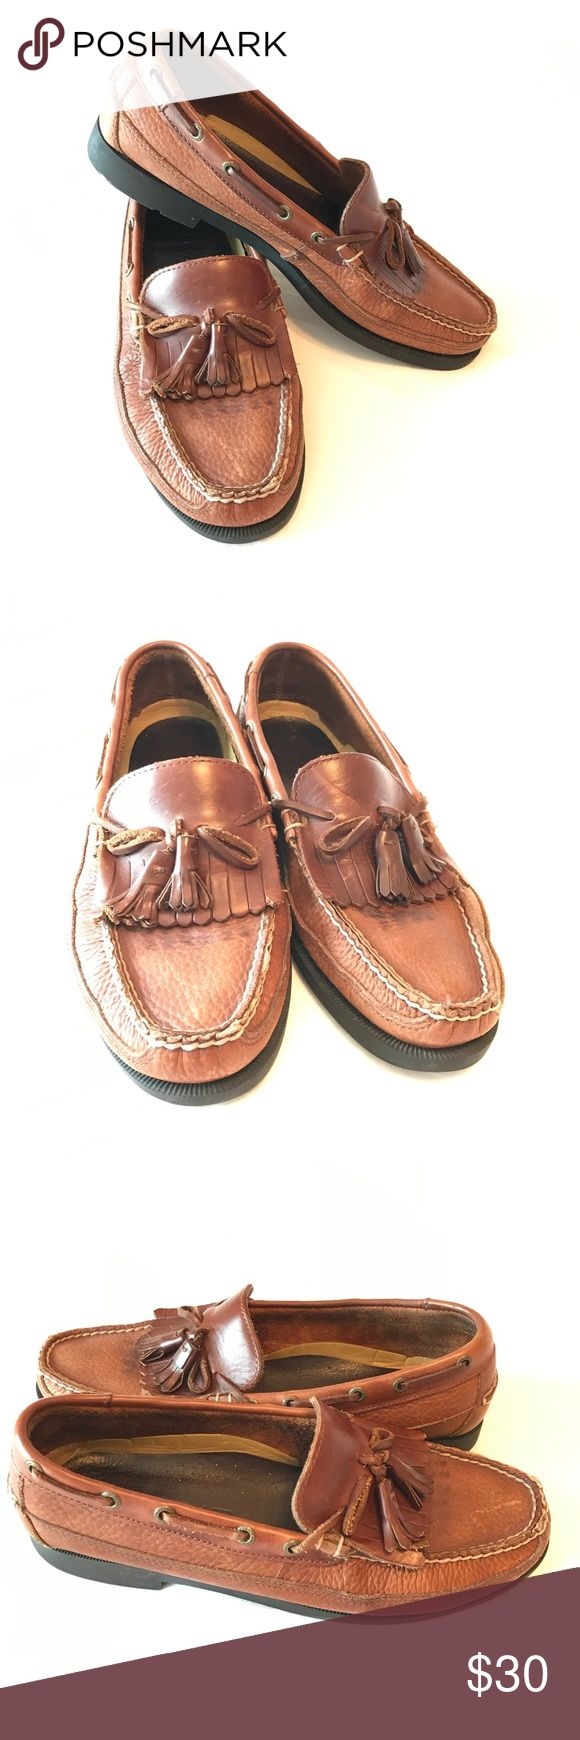 """SPERRY Mens Tassel Loafers A classic staple in every Southern & East coast gentleman's wardrobe, these rich brown leather tassel Loafers look equally handsome with slacks or shorts. Nonskid bottoms are essential for those """"work lunches"""" that turn into booze cruises. Lightly worn and ready for their next adventure! Sperry Top-Sider Shoes Loafers & Slip-Ons"""